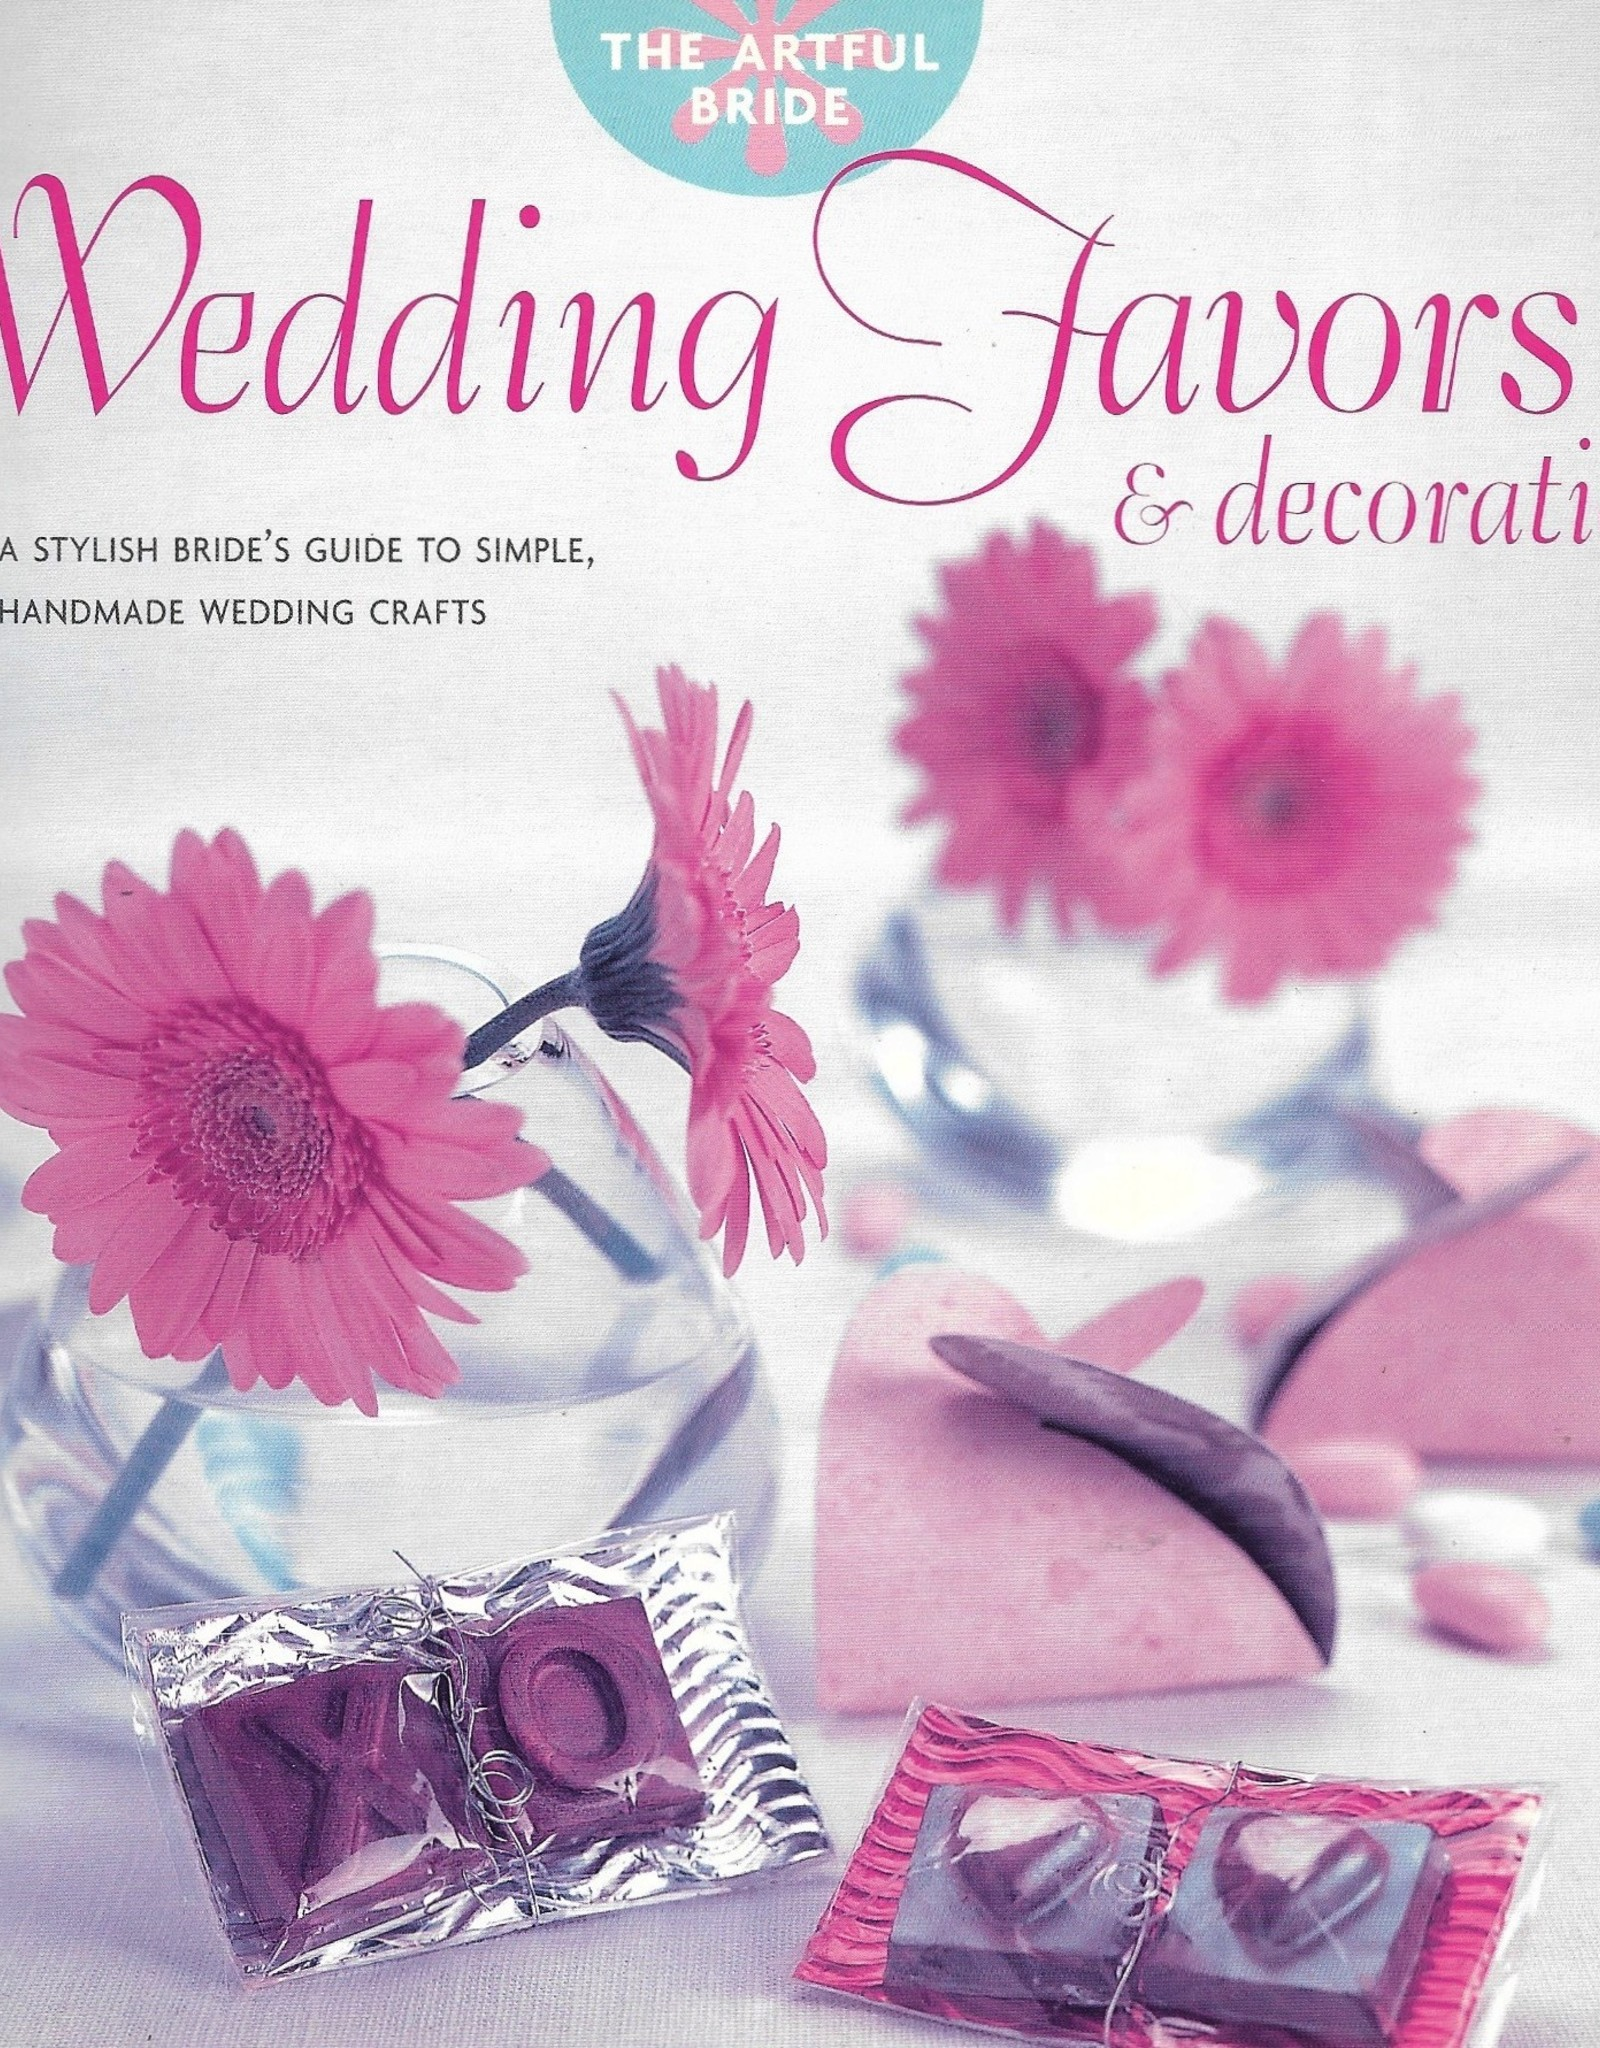 The Artful Bride: Wedding Favors & Decorations